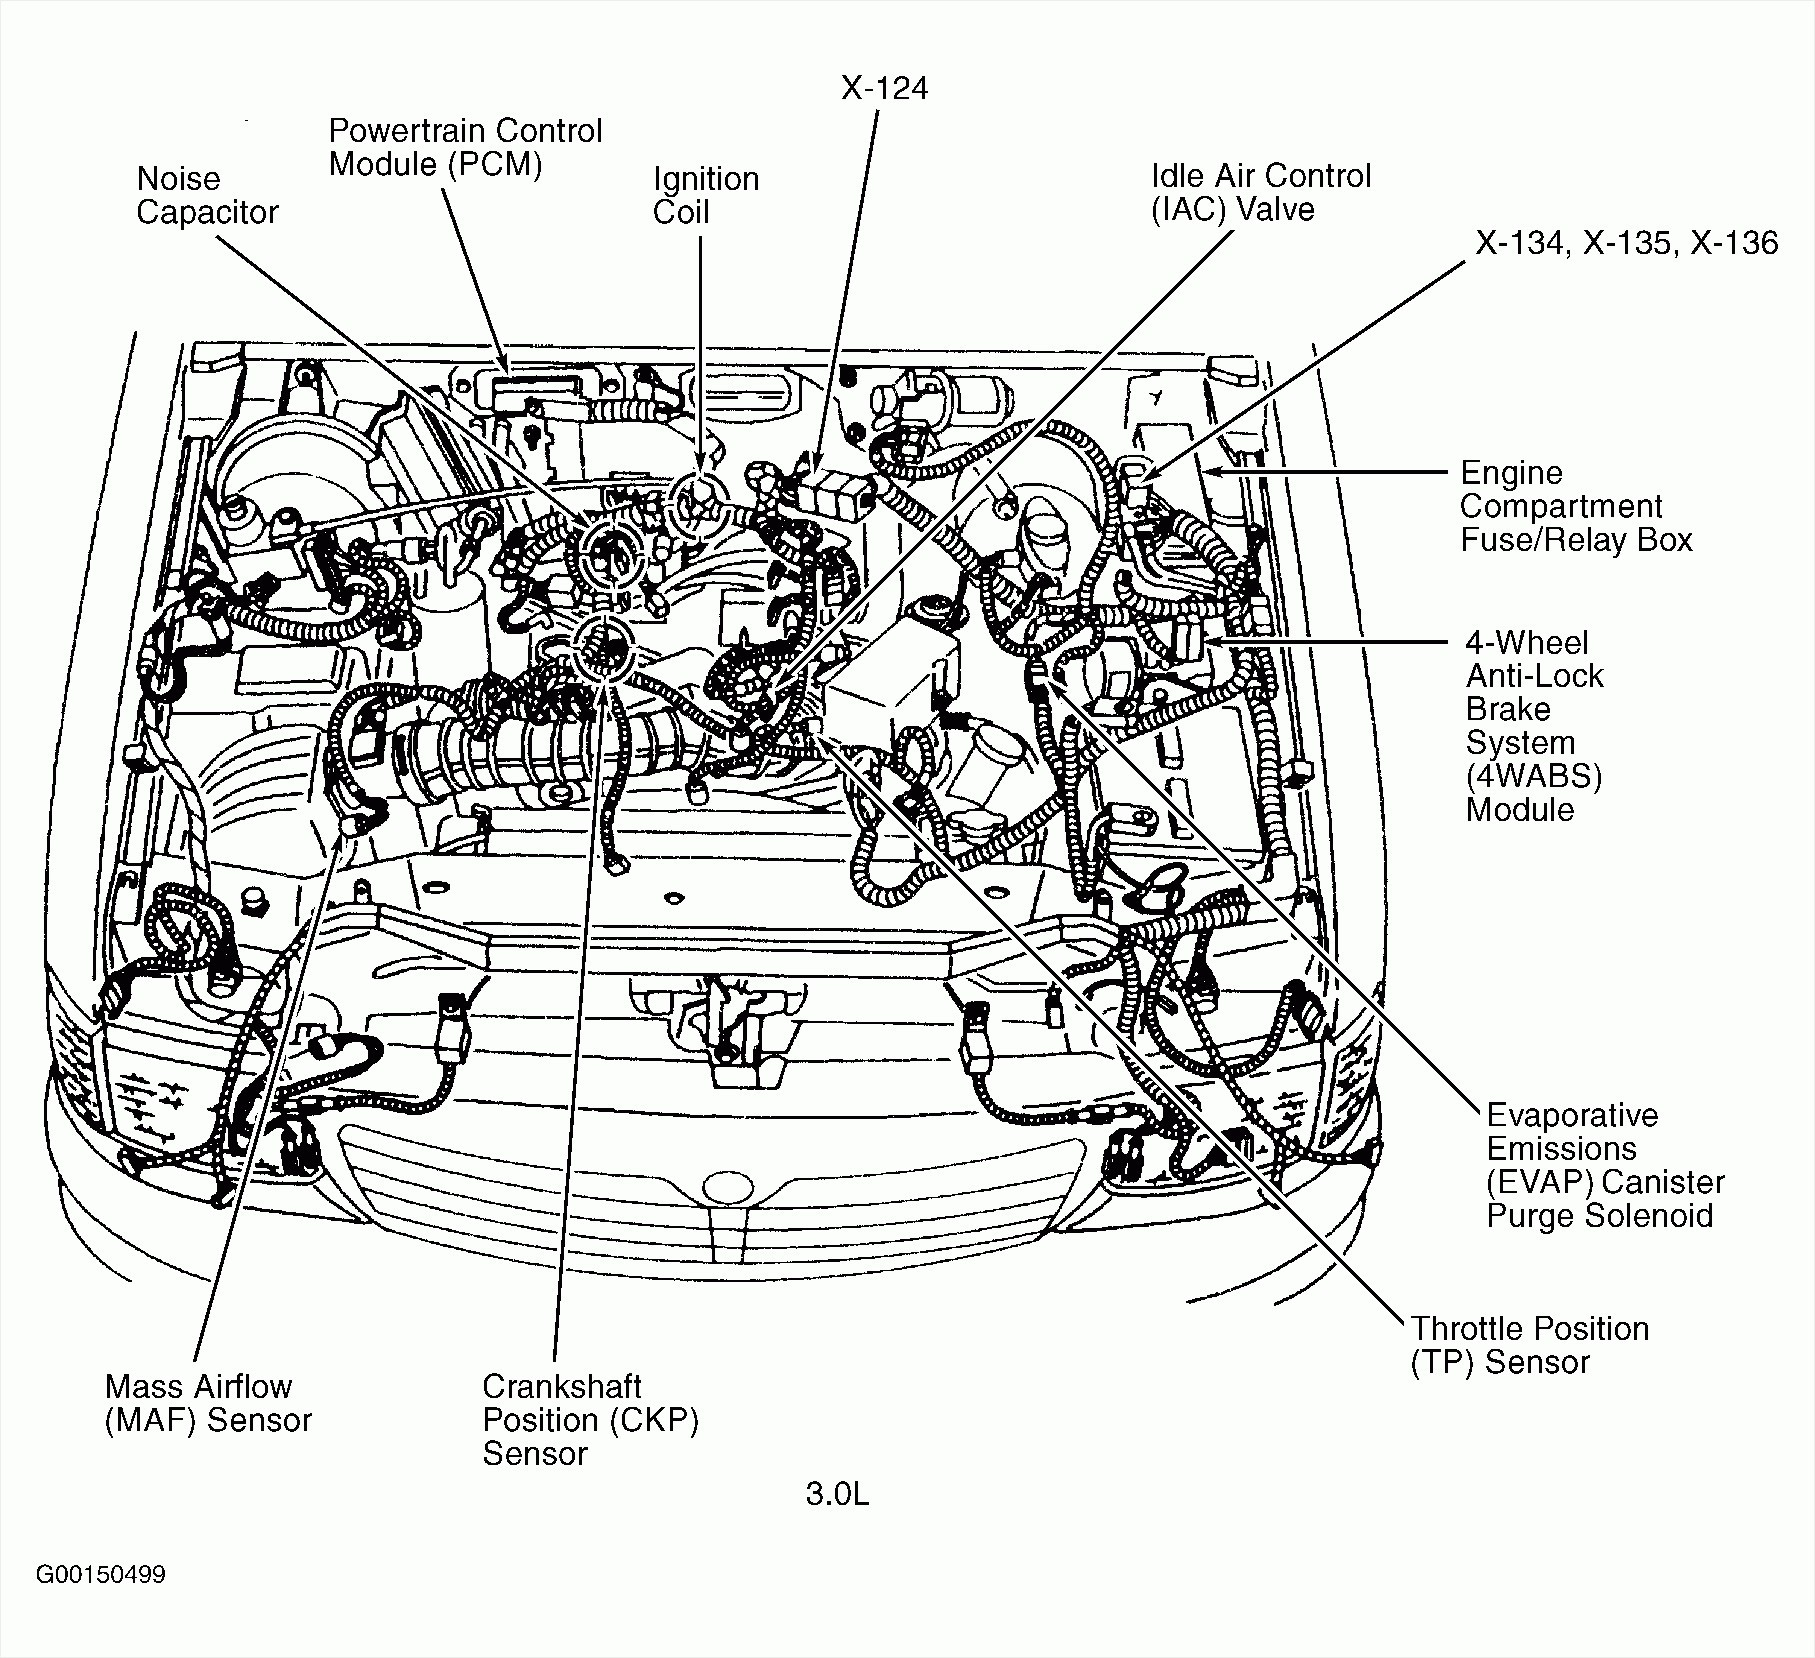 2005 rav4 engine diagram wiring diagrams schematicengine diagram for rav4 1999 online wiring diagram 2002 toyota rav4 engine diagram 1997 toyota rav4